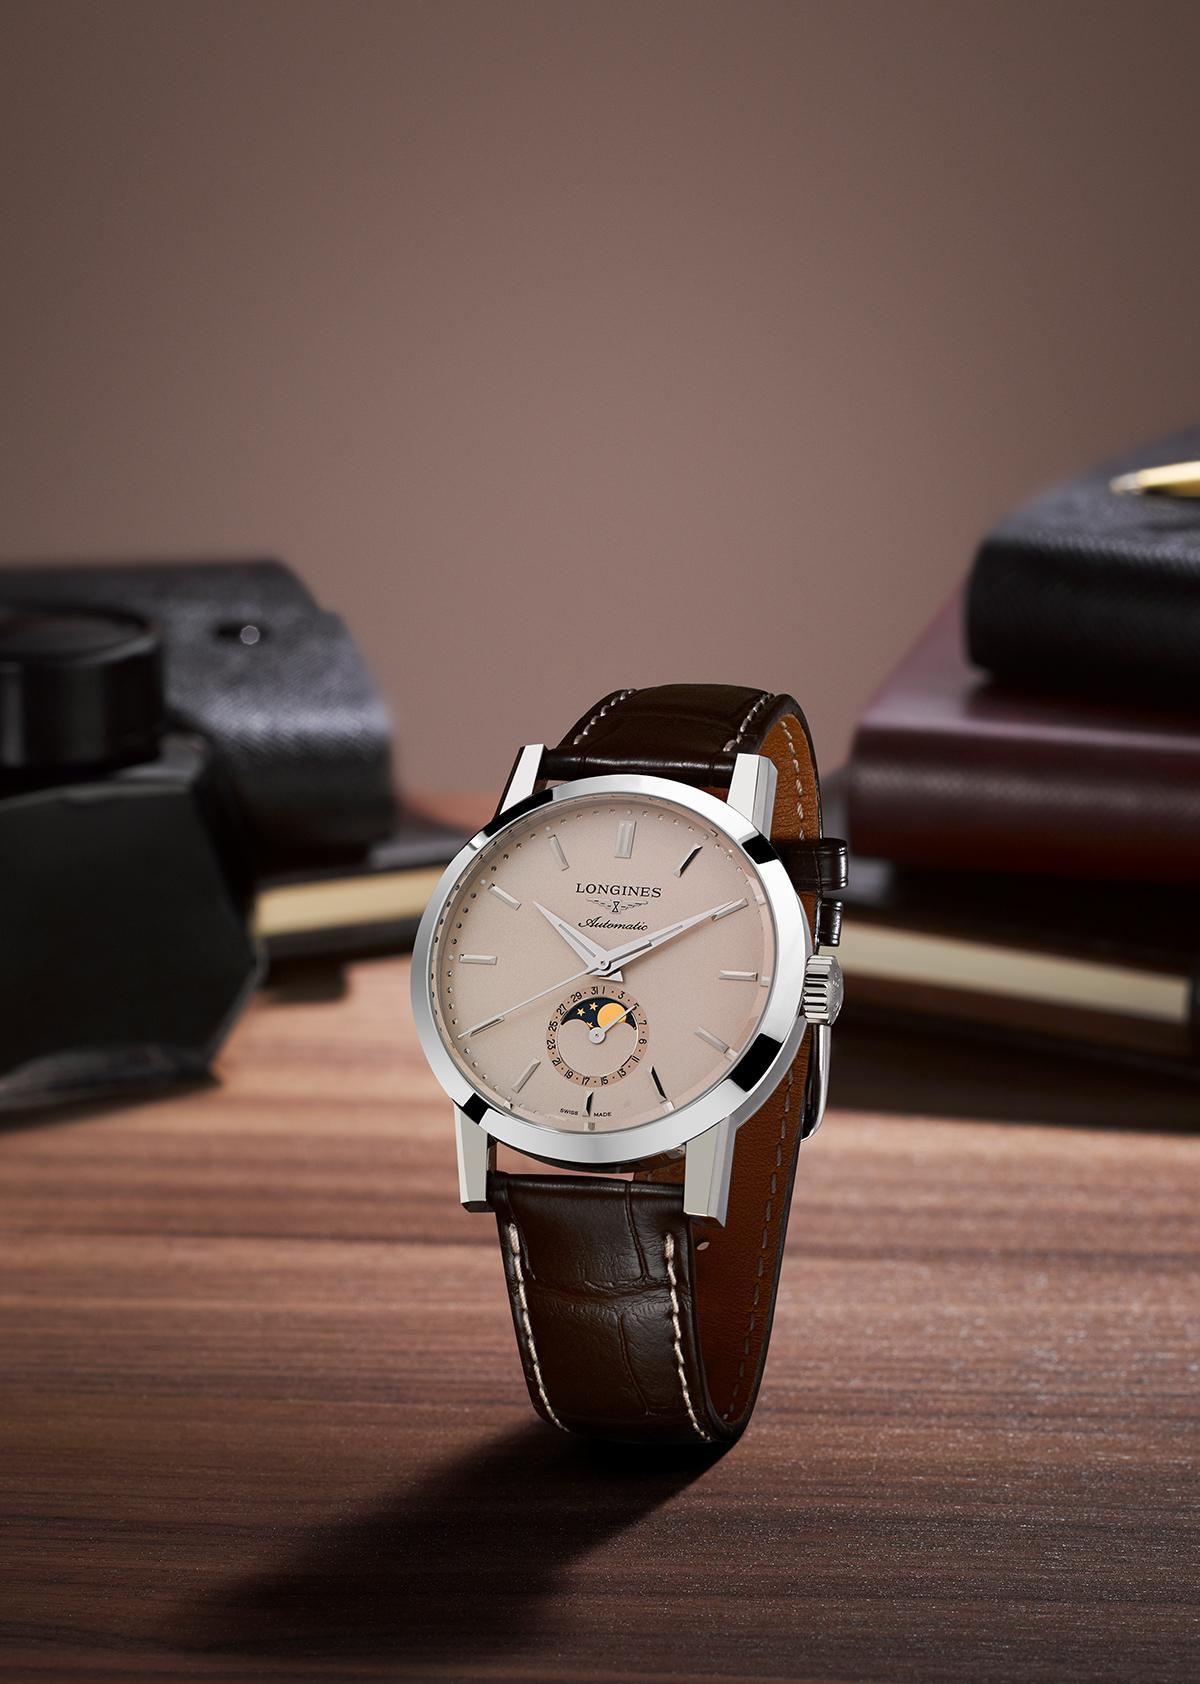 A New Chapter in the Longines 1832 Iconic Tale. The Longines 1832 Moonphase Men's Brown Leather Strap Watch with a unique moon-phase feature.